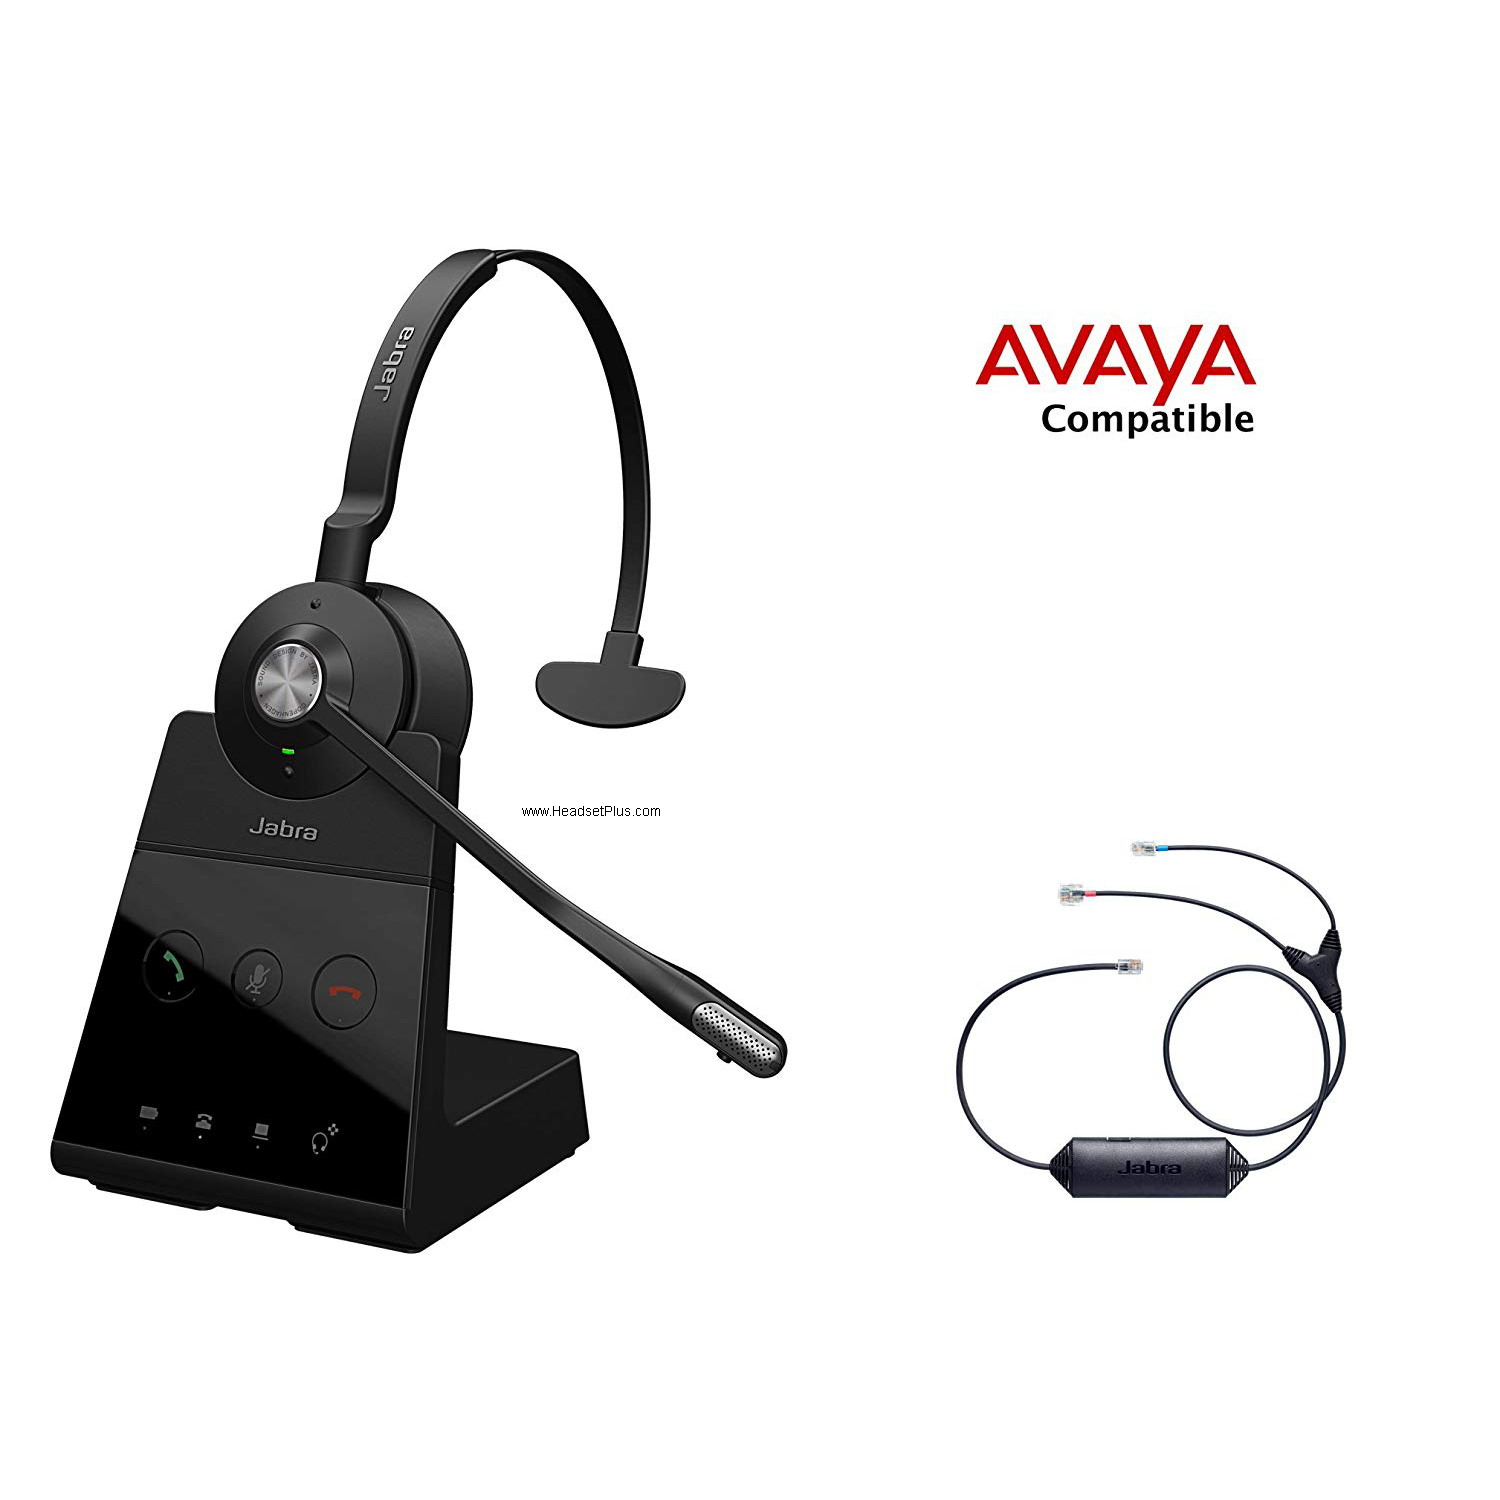 Jabra Engage 65 Mono+EHS Avaya J100 1400 9400 9500 9600 Phones